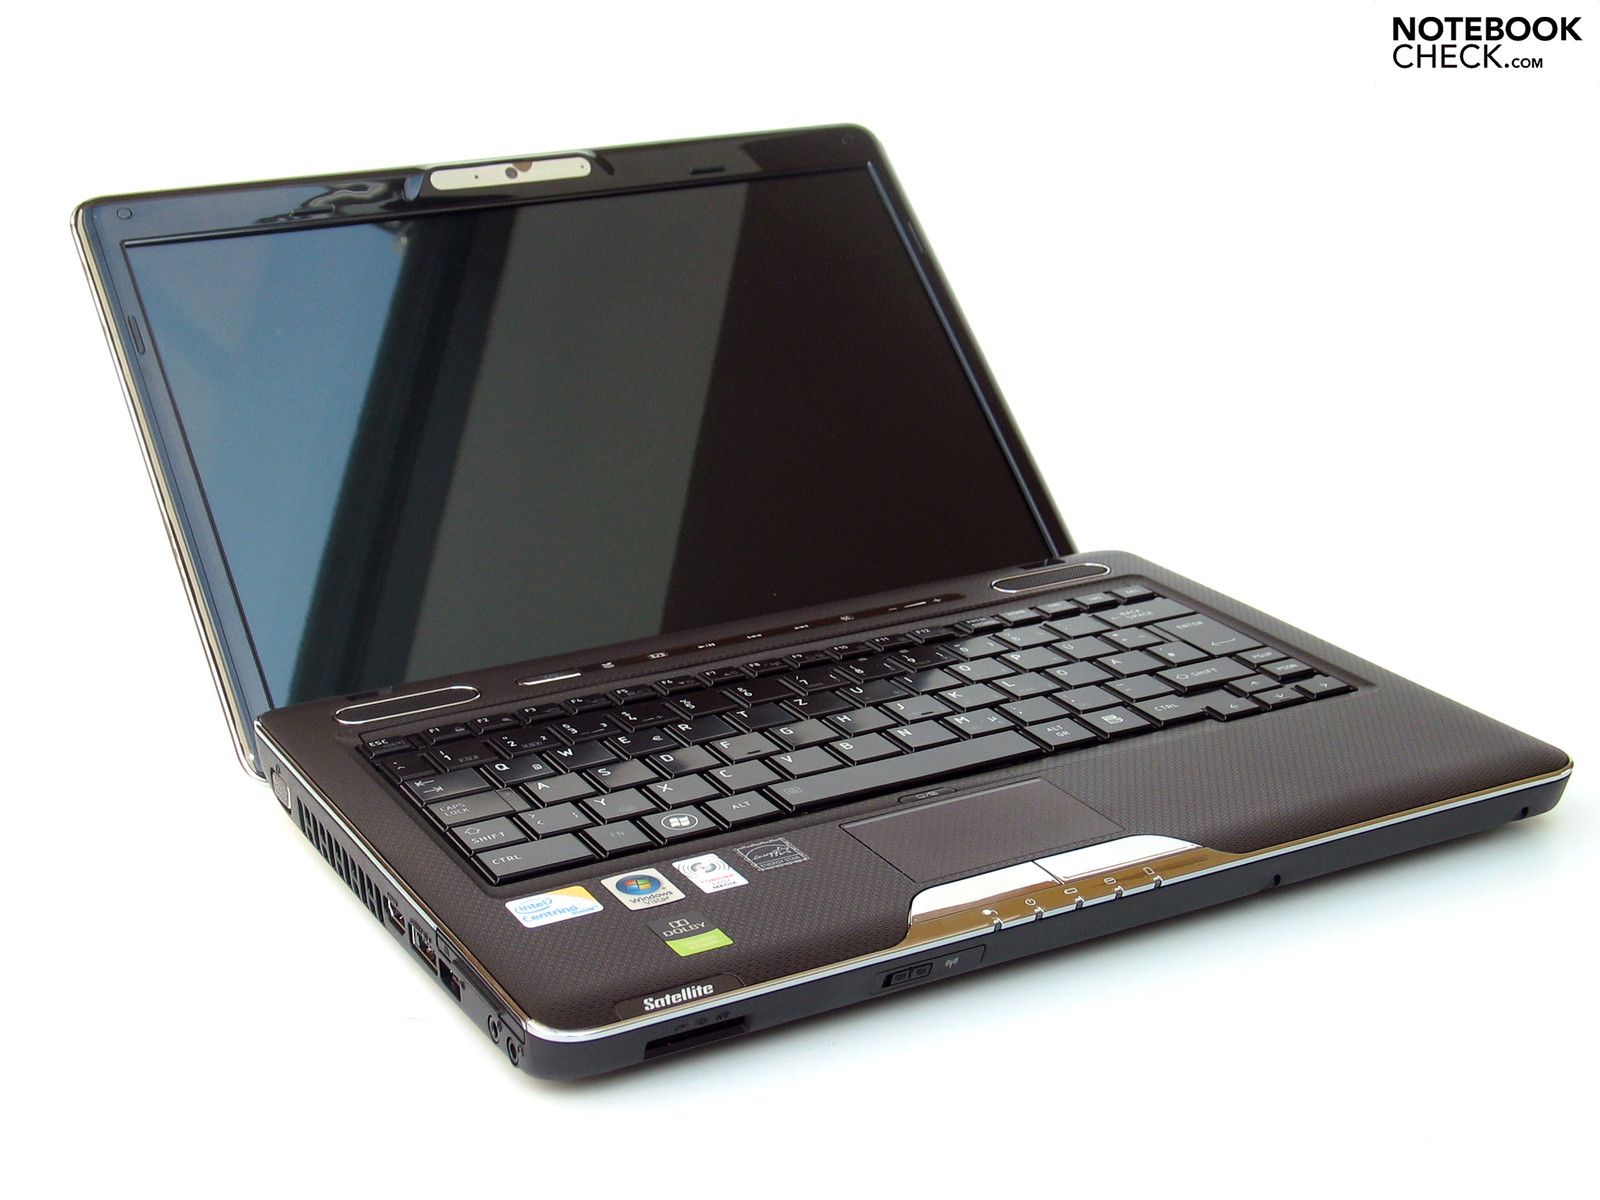 Toshiba Satellite U500 ATI Graphics Driver